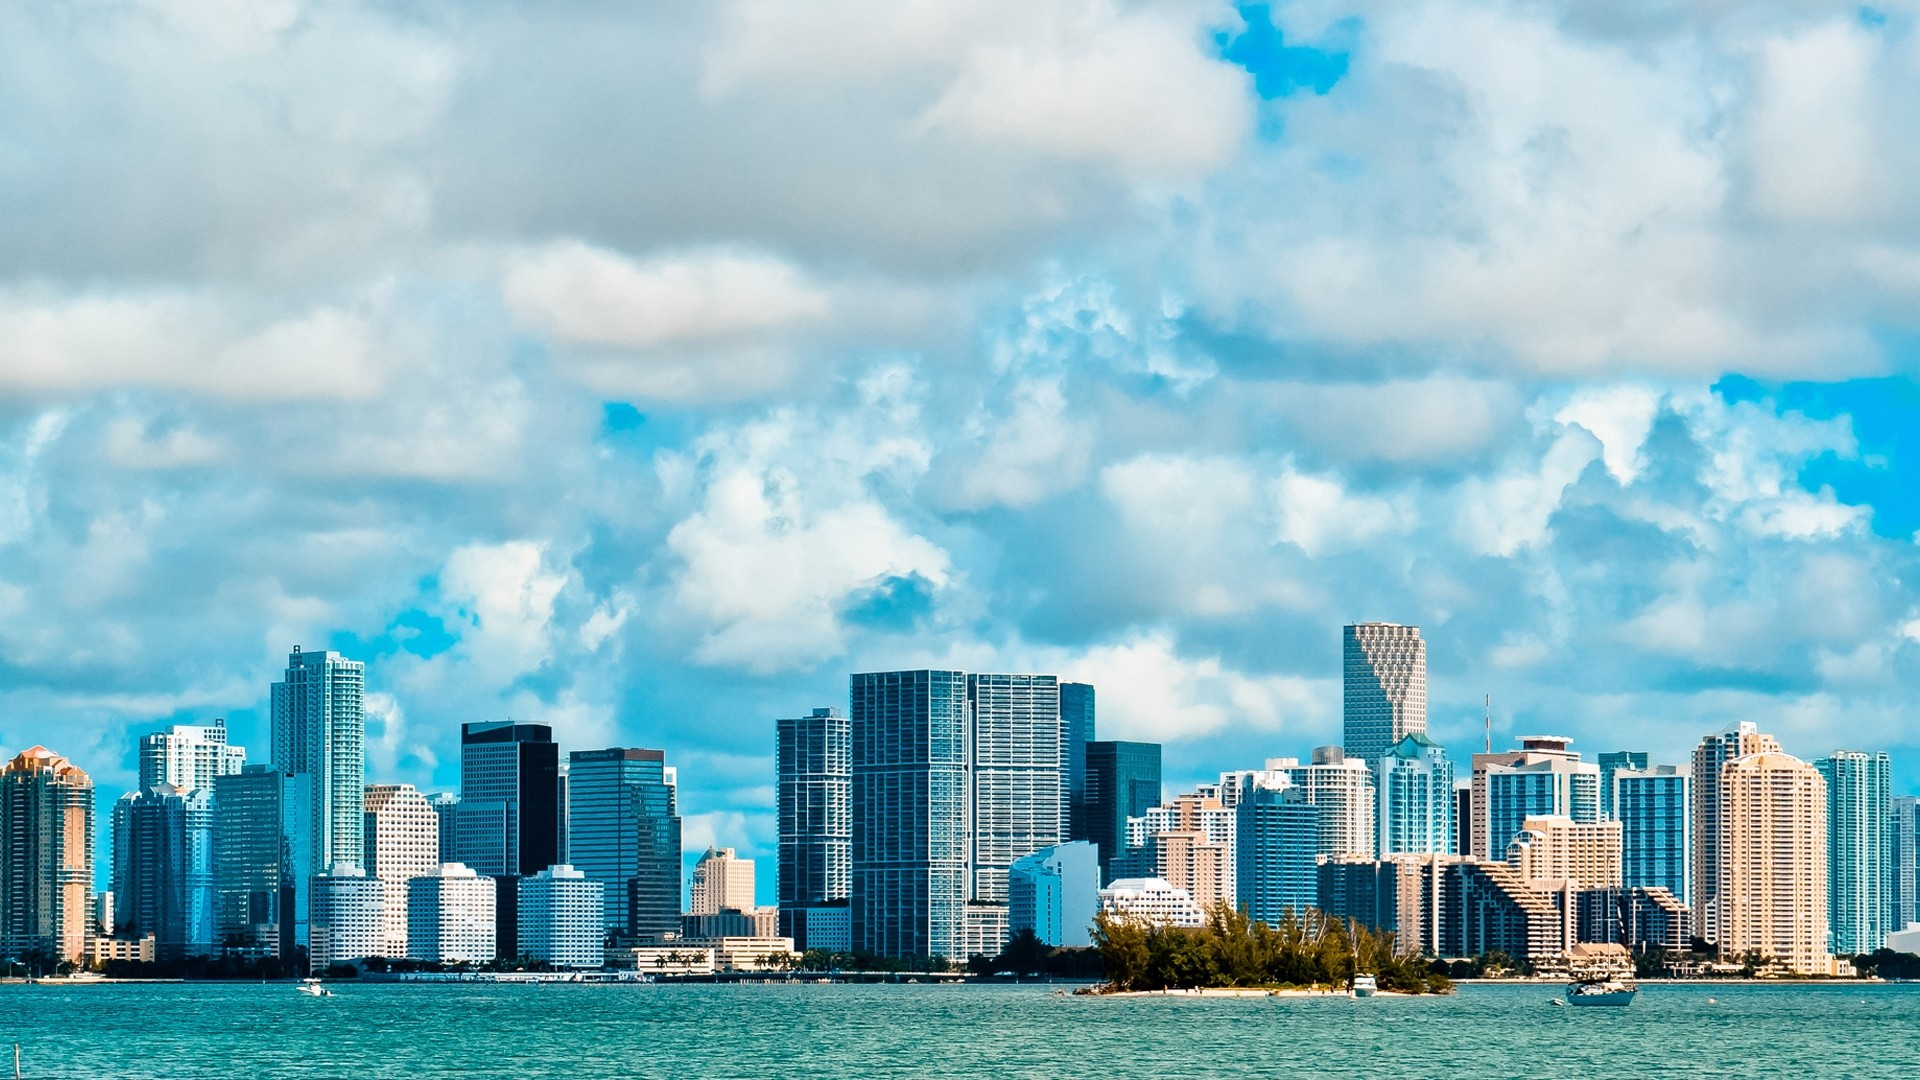 1920x1080 Wallpaper miami business center overcast ocean side view